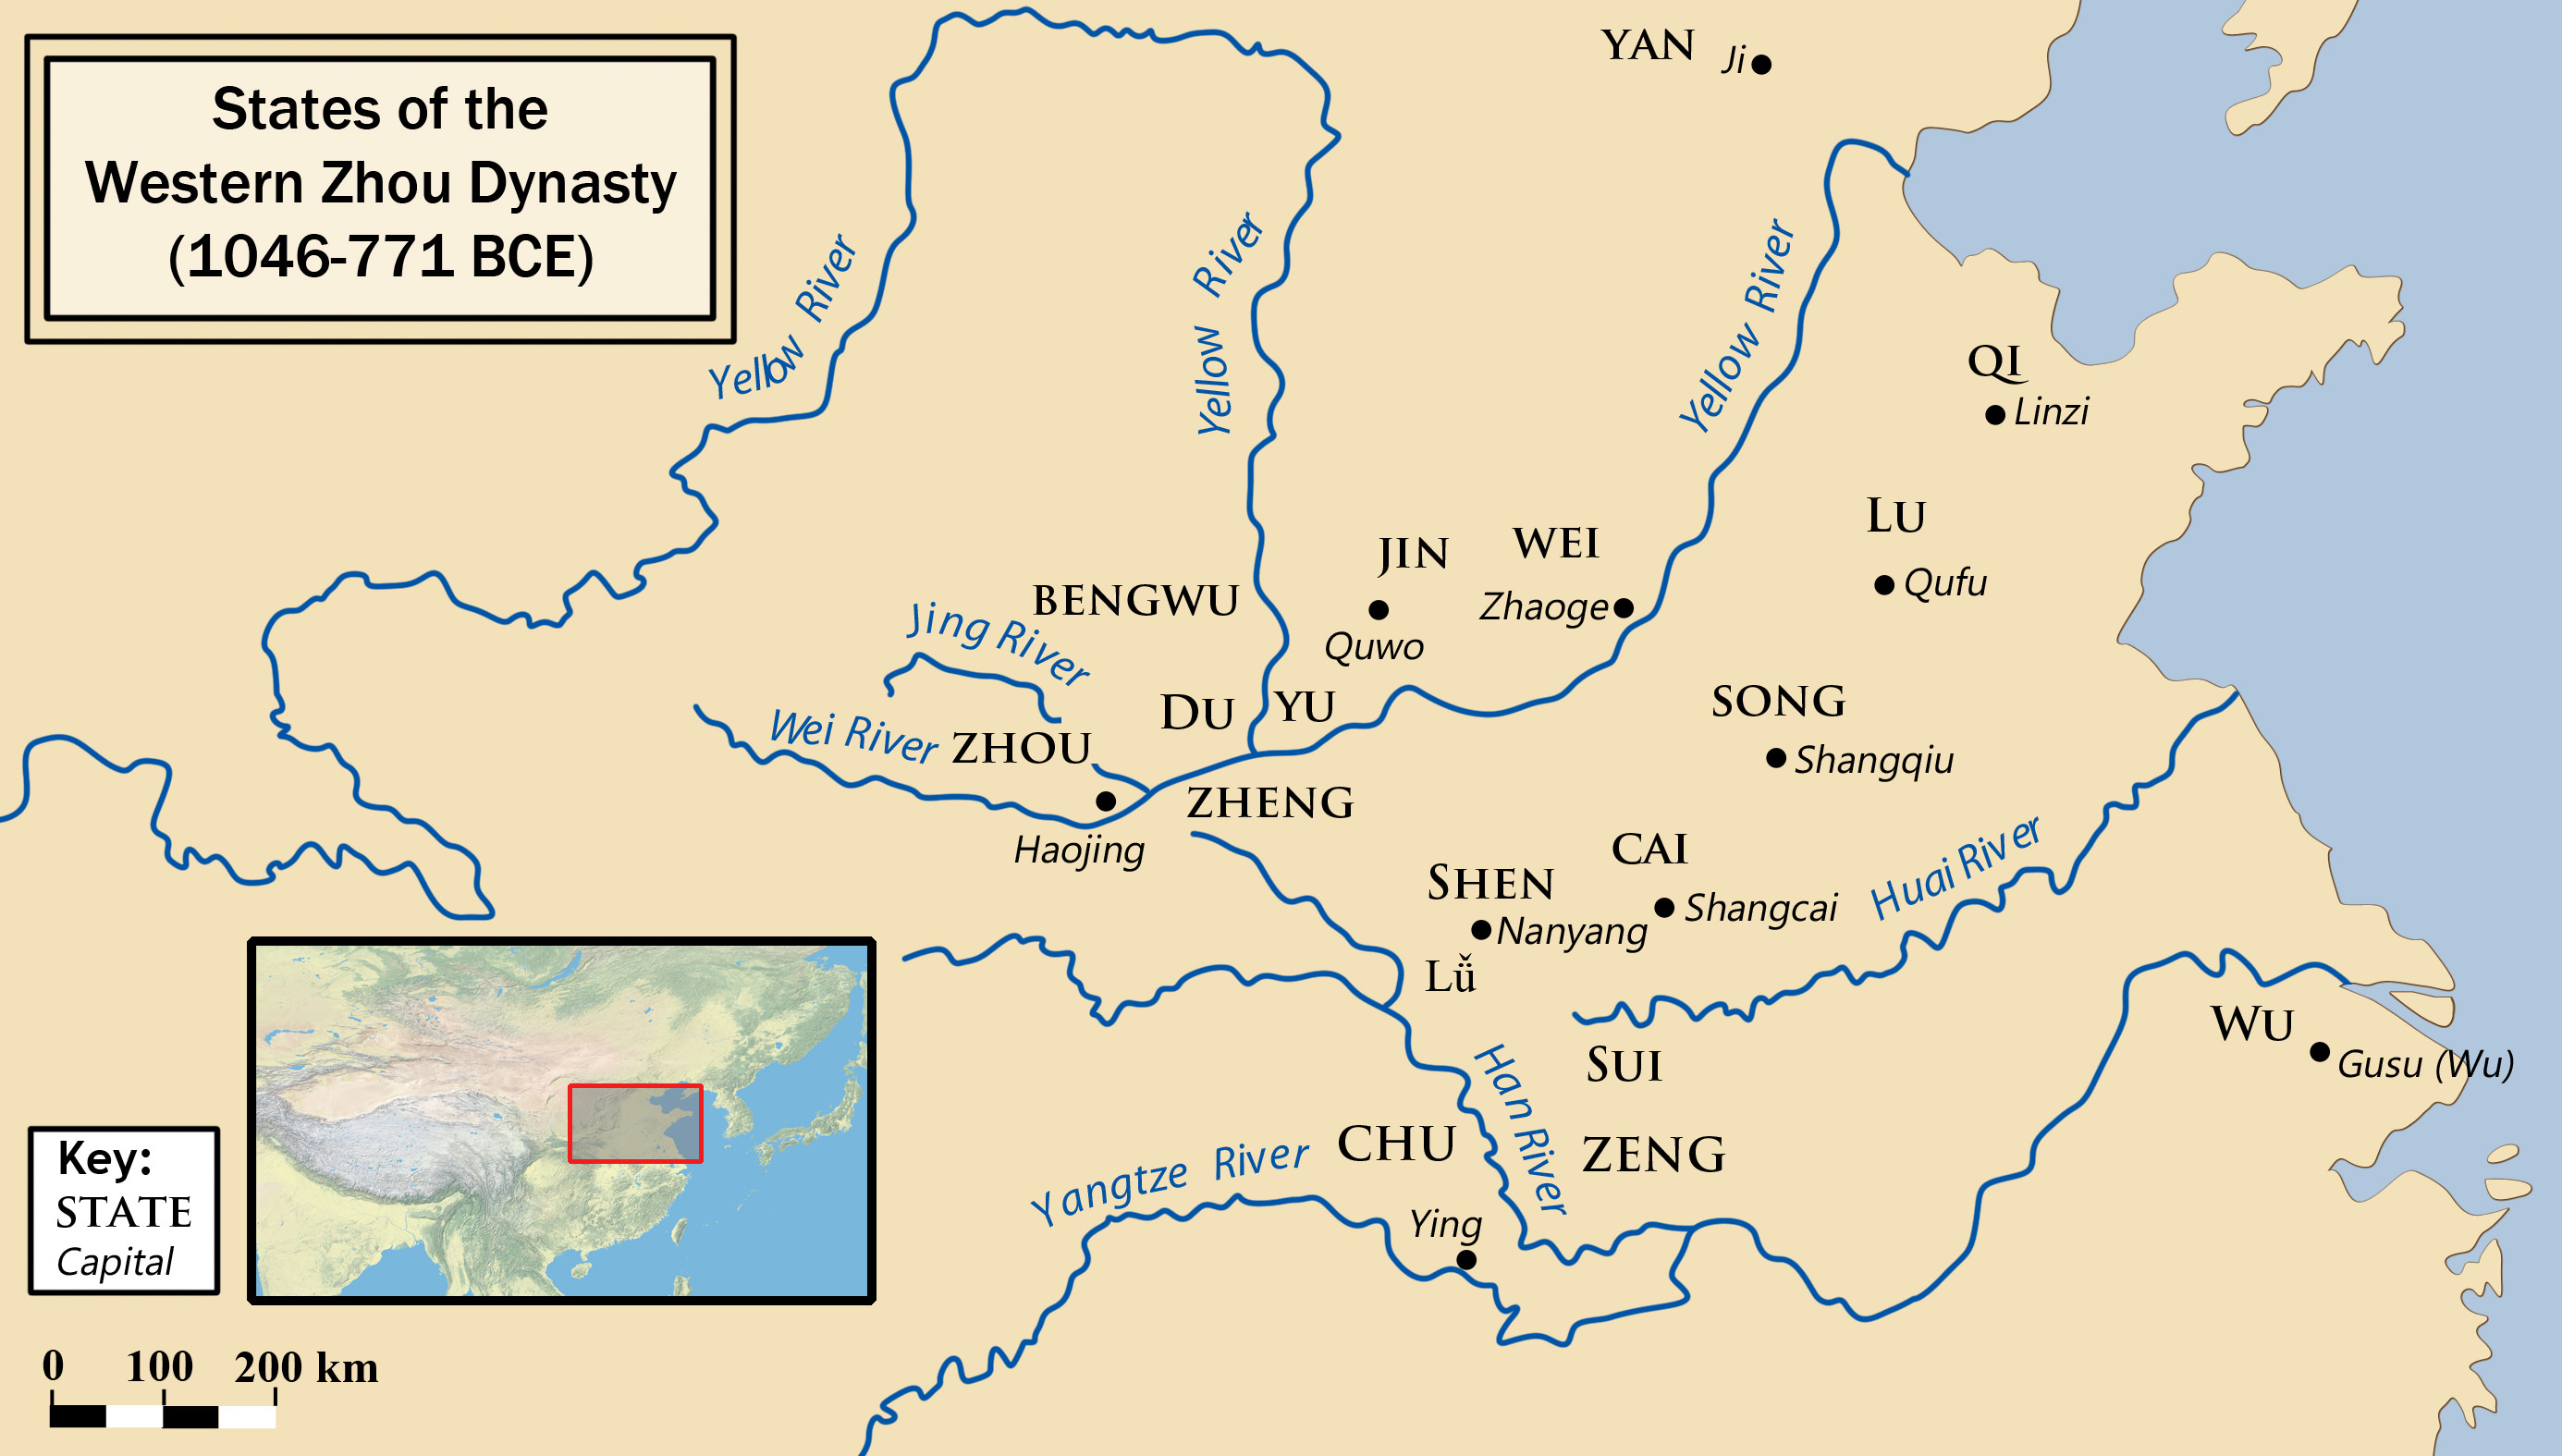 Zhou Dynasty Ancient History Encyclopedia - United states western states capitals map